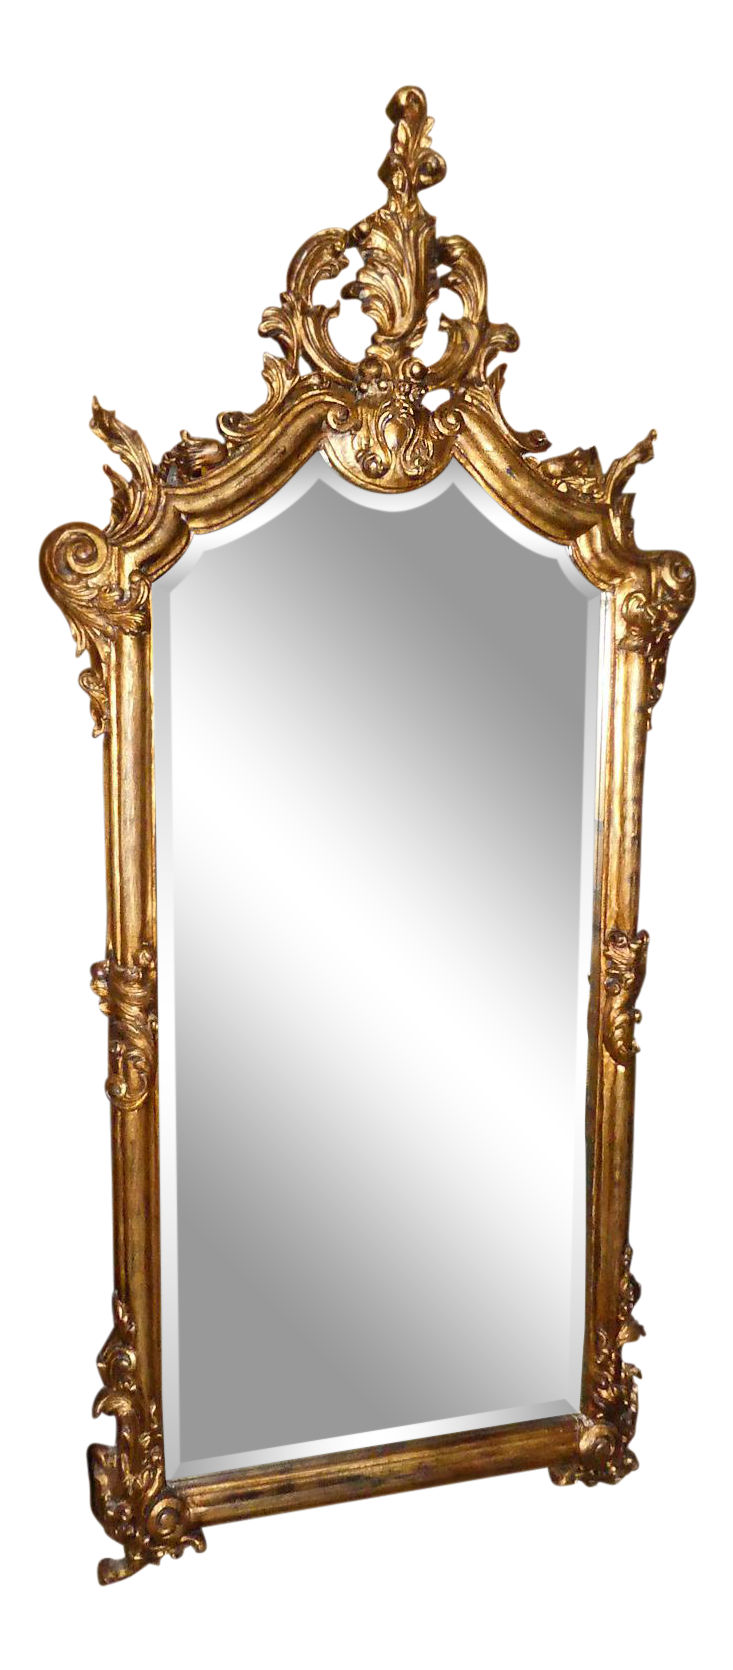 LaBarge Gilt Wood Mirror - Made in Italy